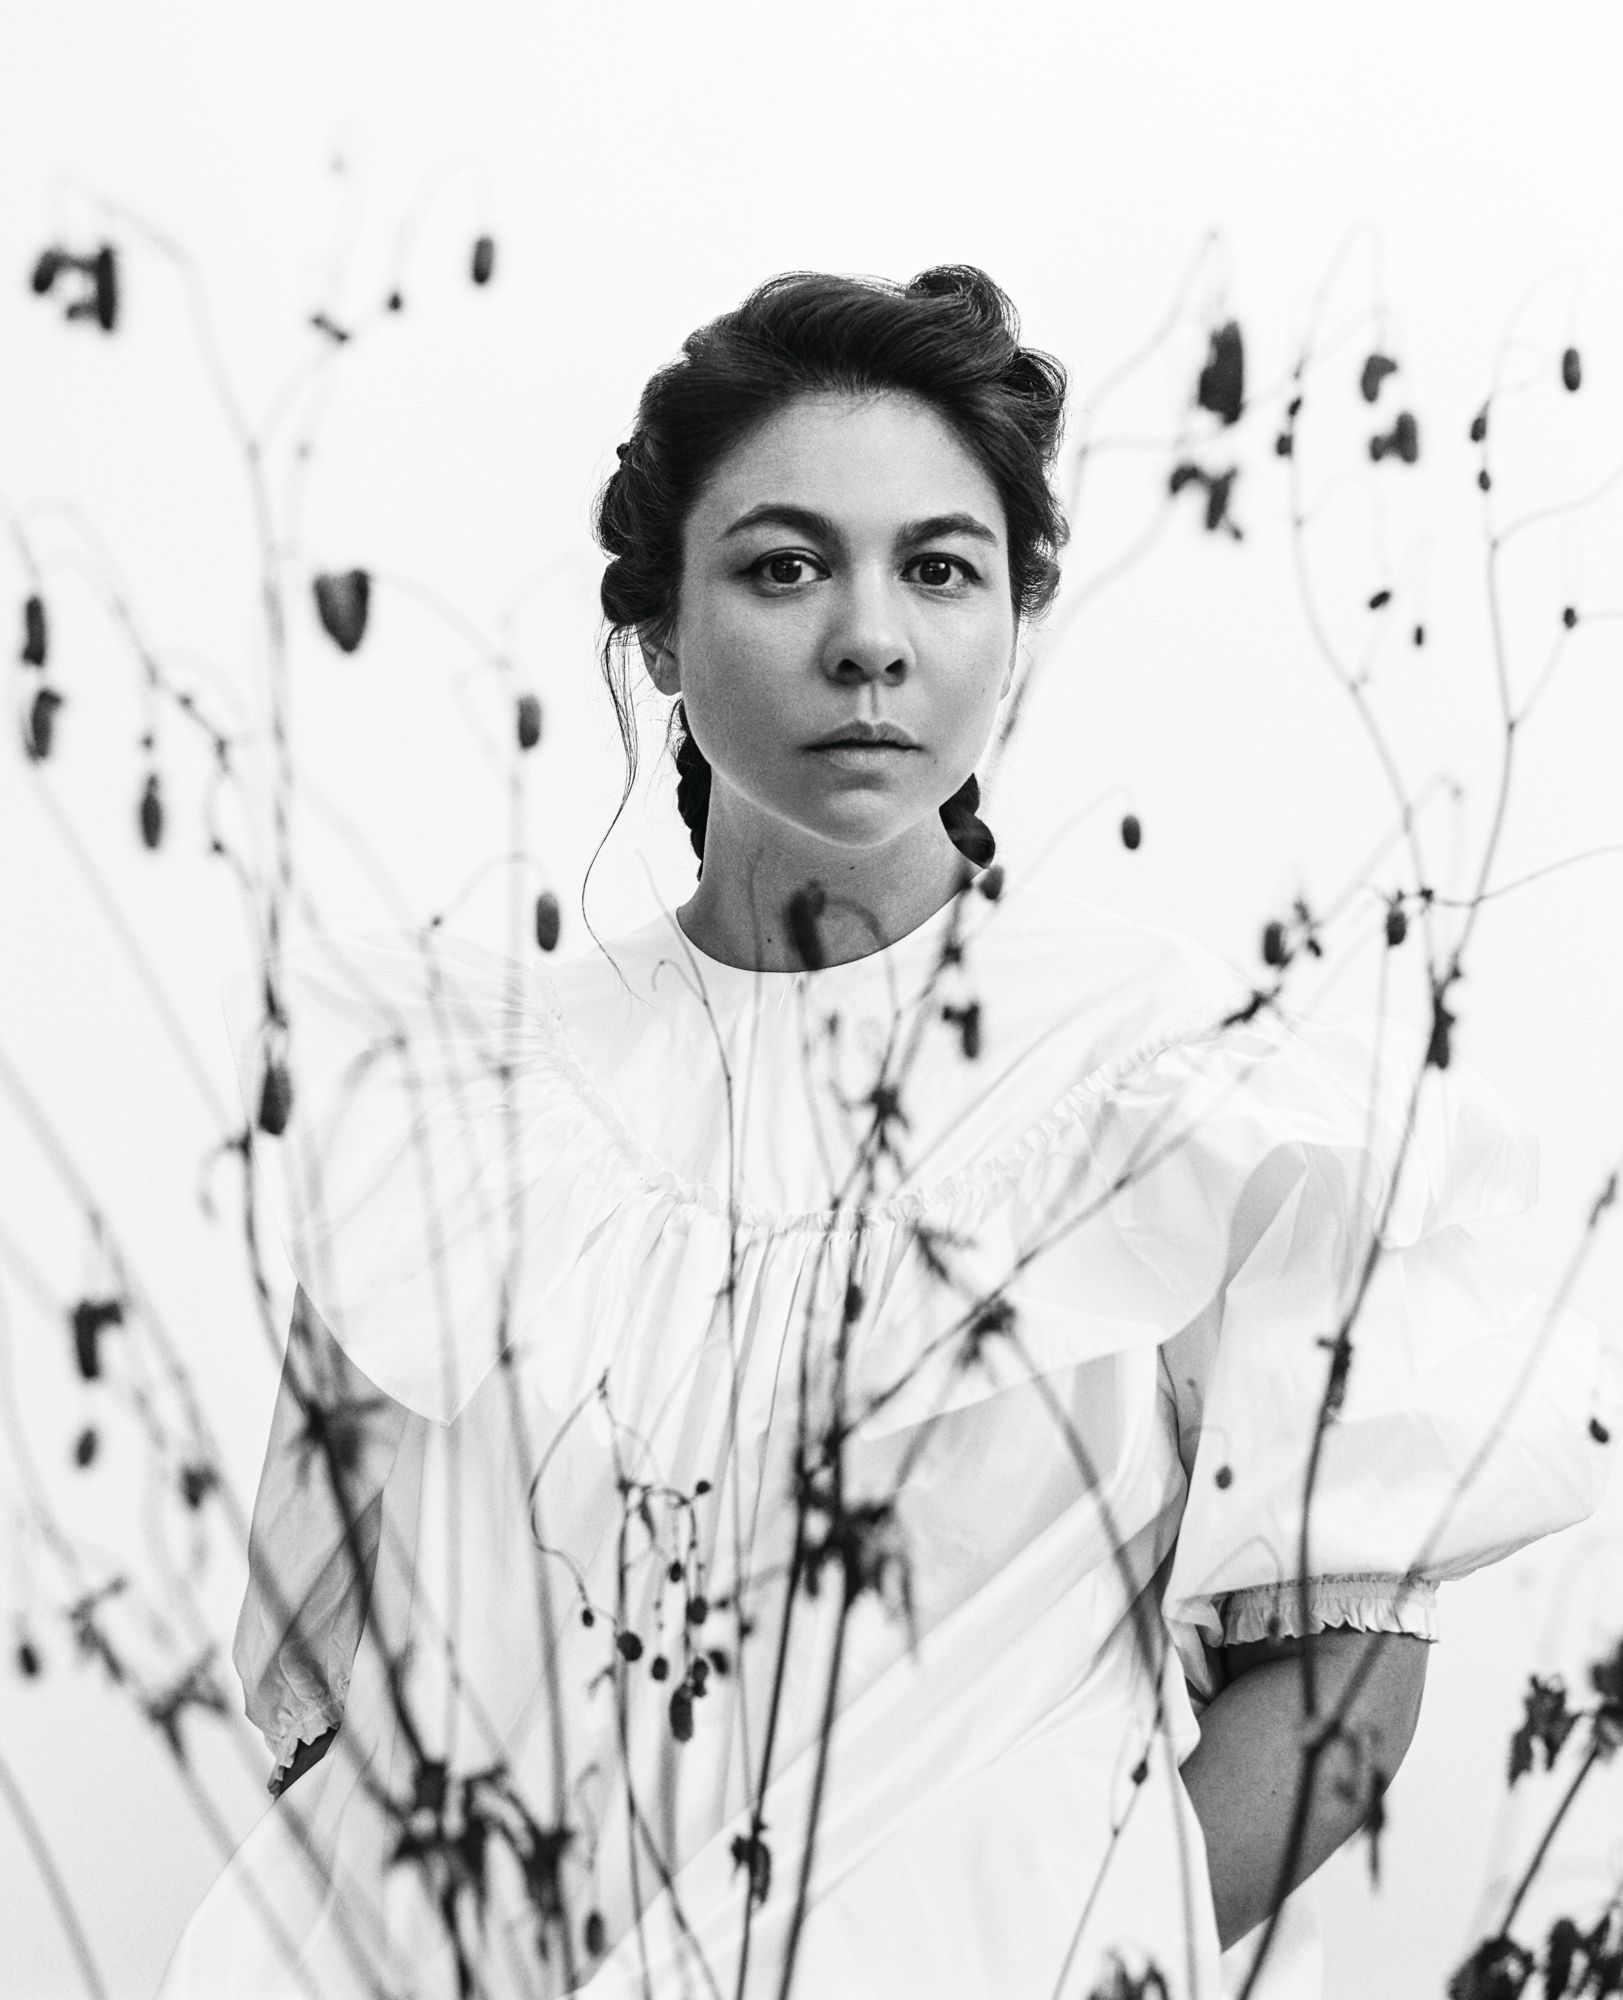 Simone Rocha's Irish-Cantonese Heritage is an Inspiration Behind Her Fashion Collections